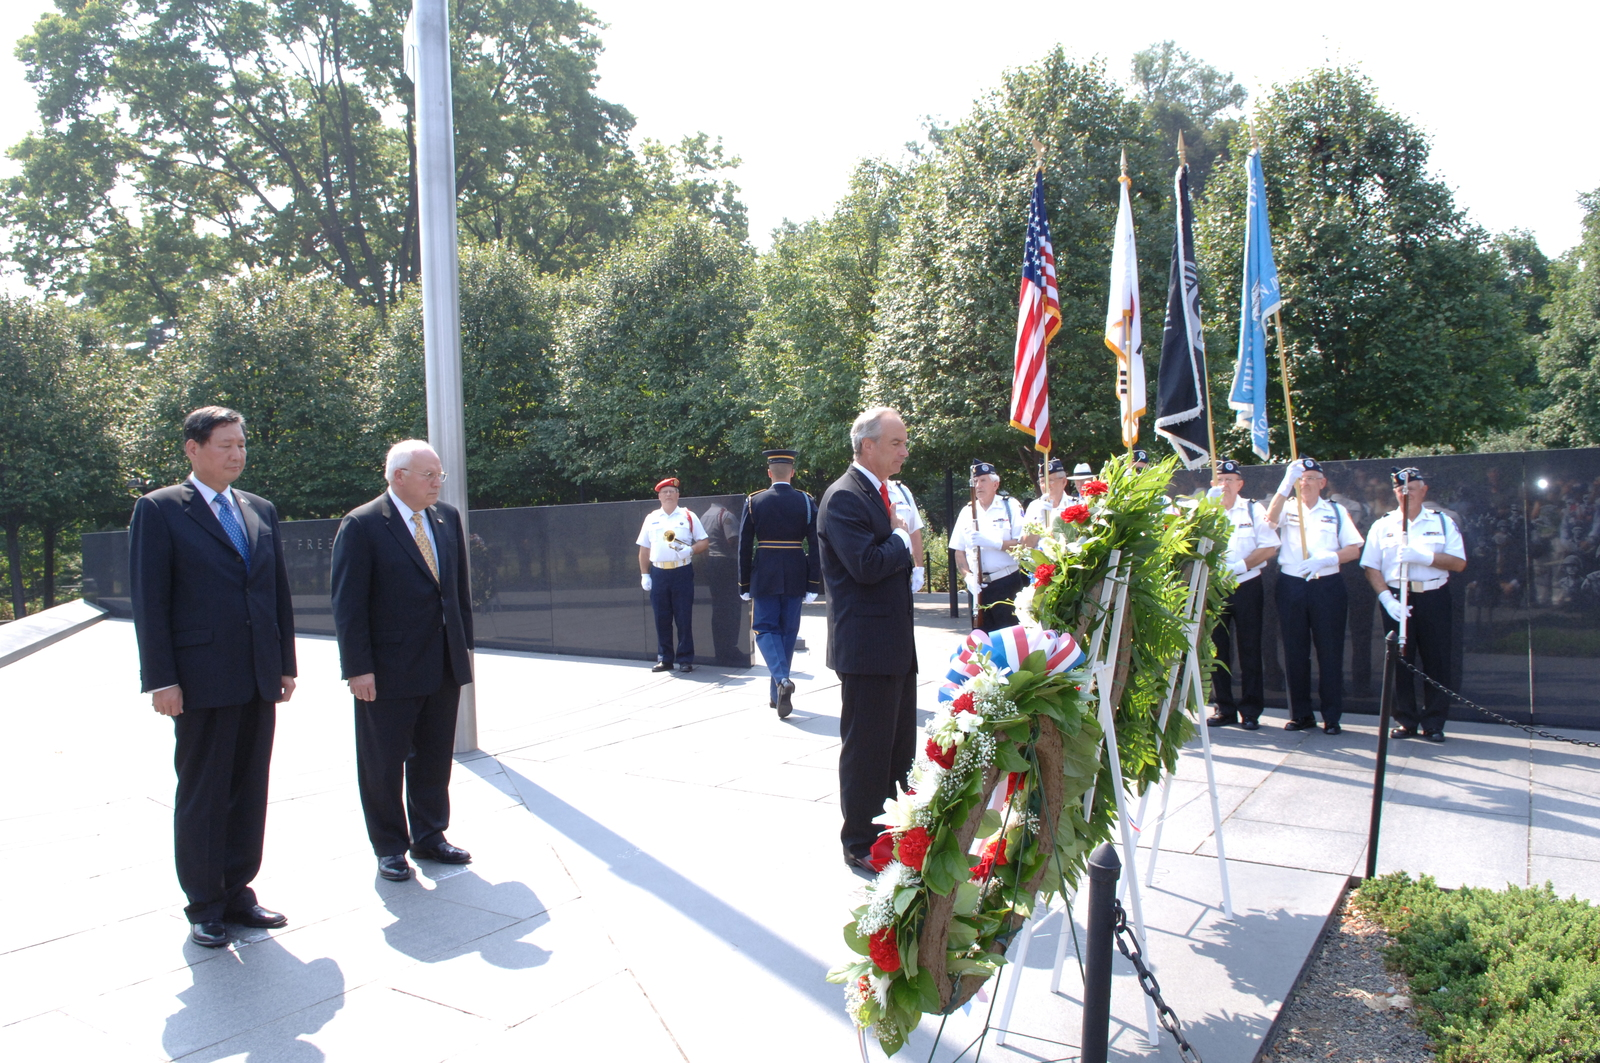 [Assignment: 48-DPA-SOI_K_Korean_7-27-06] 2006 Korean War Veterans Armistice Day Ceremony [at the Korean War Veterans Memorial, Washington, D.C.], with Secretary Dirk Kempthorne [joining Vice President Dick Cheney and South Koreaa's Ambassador to the U.S., Lee Tae-Sik, among the dignitaries participating] [48-DPA-SOI_K_Korean_7-27-06_IOD_2629.JPG]